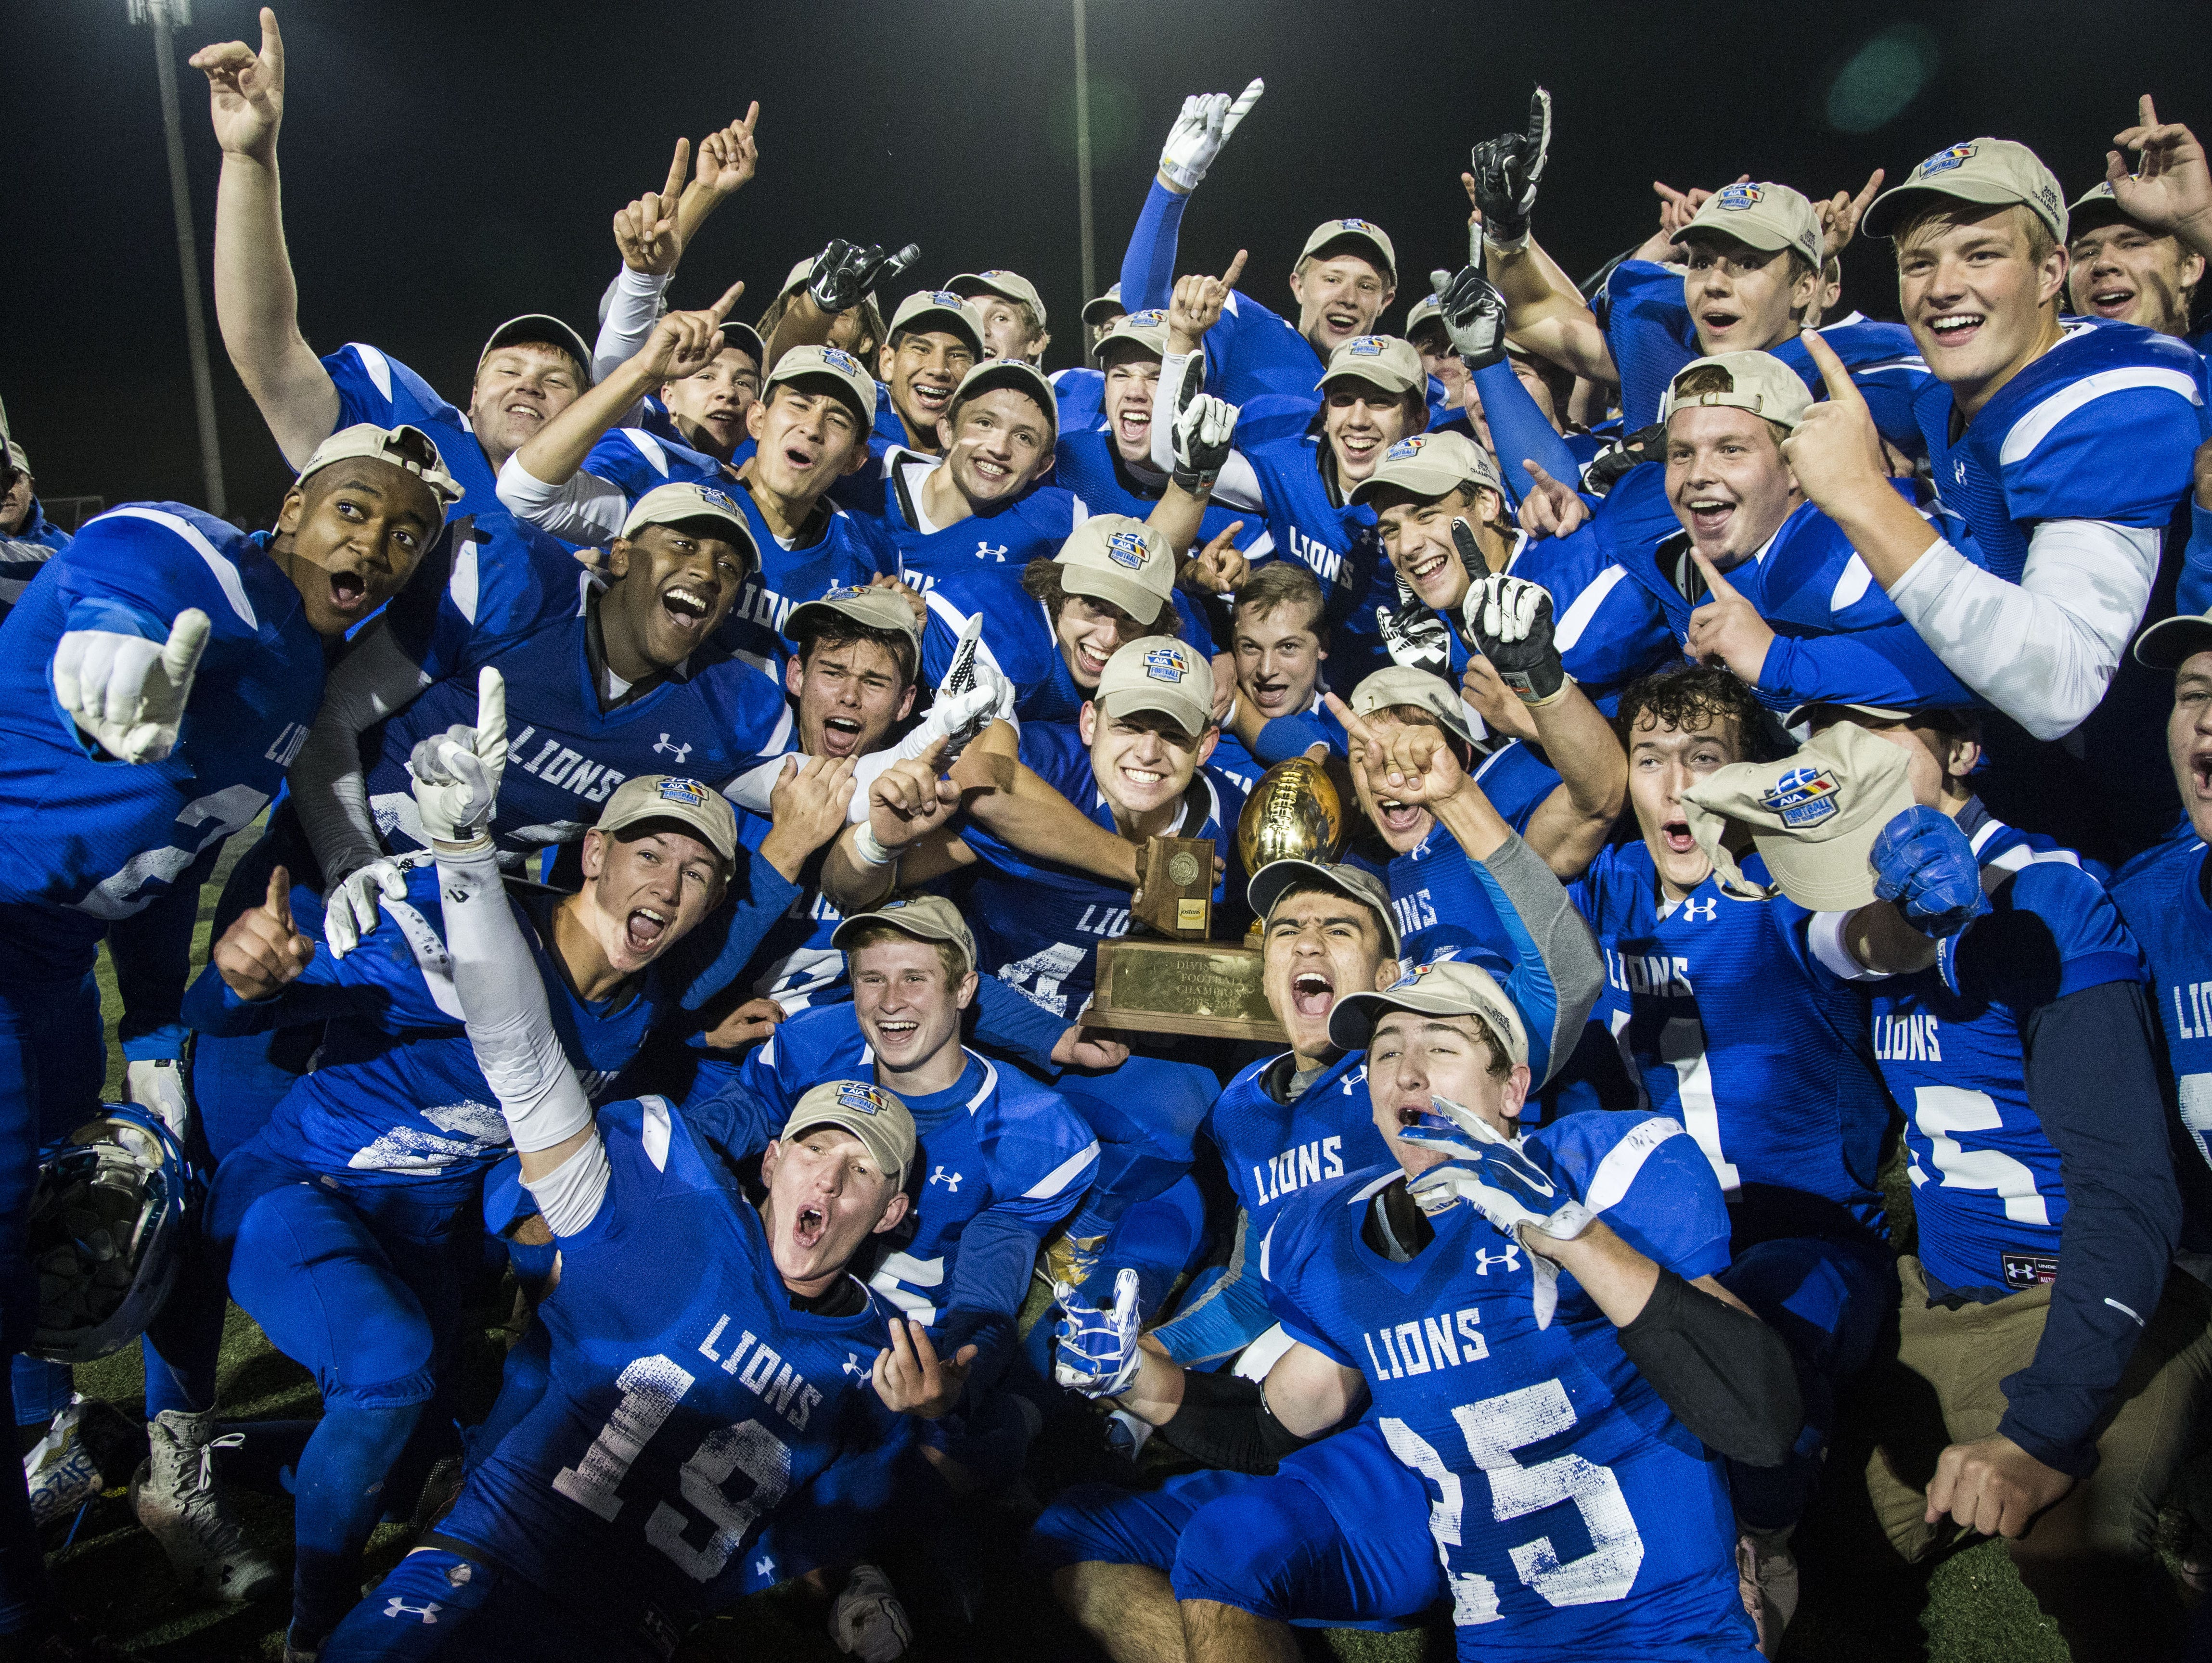 Pusch Ridge celebrates with the trophy after beating Northwest Christian for the Division IV State Championship at Chaparral High School on Nov. 28, 2015 in Scottsdale Ariz.